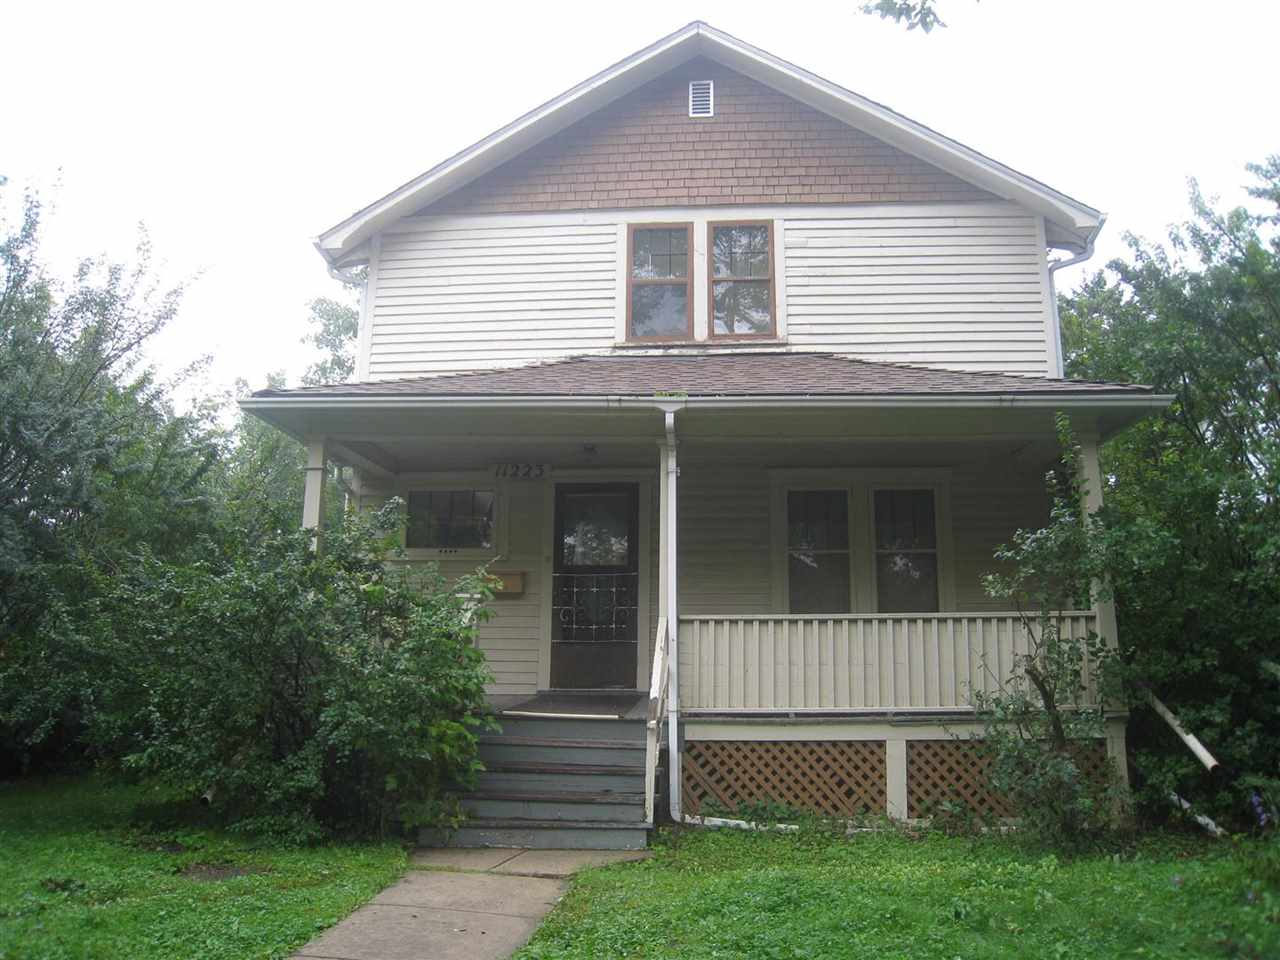 """Property is essentially original a (newer furnace) and is being sold """"as is / where is"""" at time of possession. No warranties. The seller has not lived in the home though it was rented until August 31, 2019. Lot dimensions are 50' x 150' and zoning is RF3. Or as 11223-125 St has some historical significance, the new owner can choose to re-invigorate this part of the city's heritage. This home has not been designated. Come live in trendy Inglewood beside the restaurants and shops of 124 Street. It's just a short hop to the Brewery District for more restaurants and shopping choices. Westmount Shopping Centre, Telus World of Science, great schools, numerous churches, and other community amenities are close at hand. Inglewood is a big part of the heart of Edmonton."""